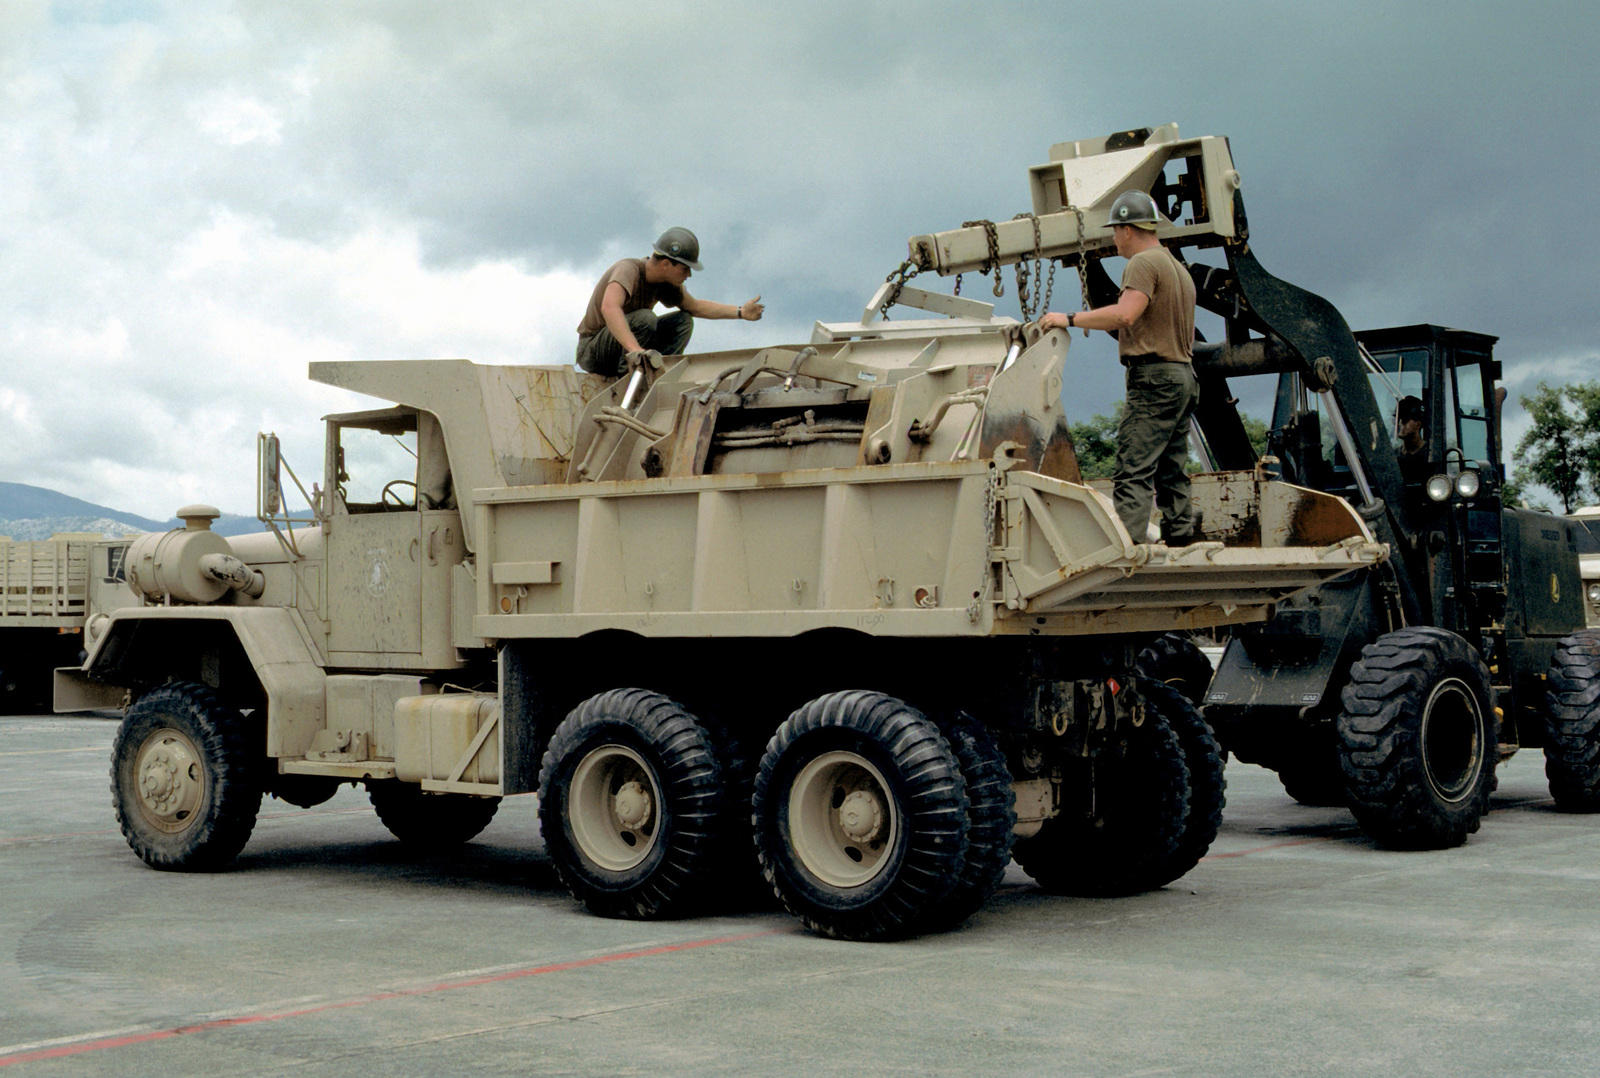 Two Seabees from Naval Mobile Construction Battalion 4 (NMCB-4) guide a forklift operator as he lowers a piece of equipment into the bed of an M-817 5-ton dump truck. NMCB-4 is preparing to leave Cubi Point after helping to clean up the volcanic ash from Mount Pinatubo that covered the area and caused some buildings to collapse